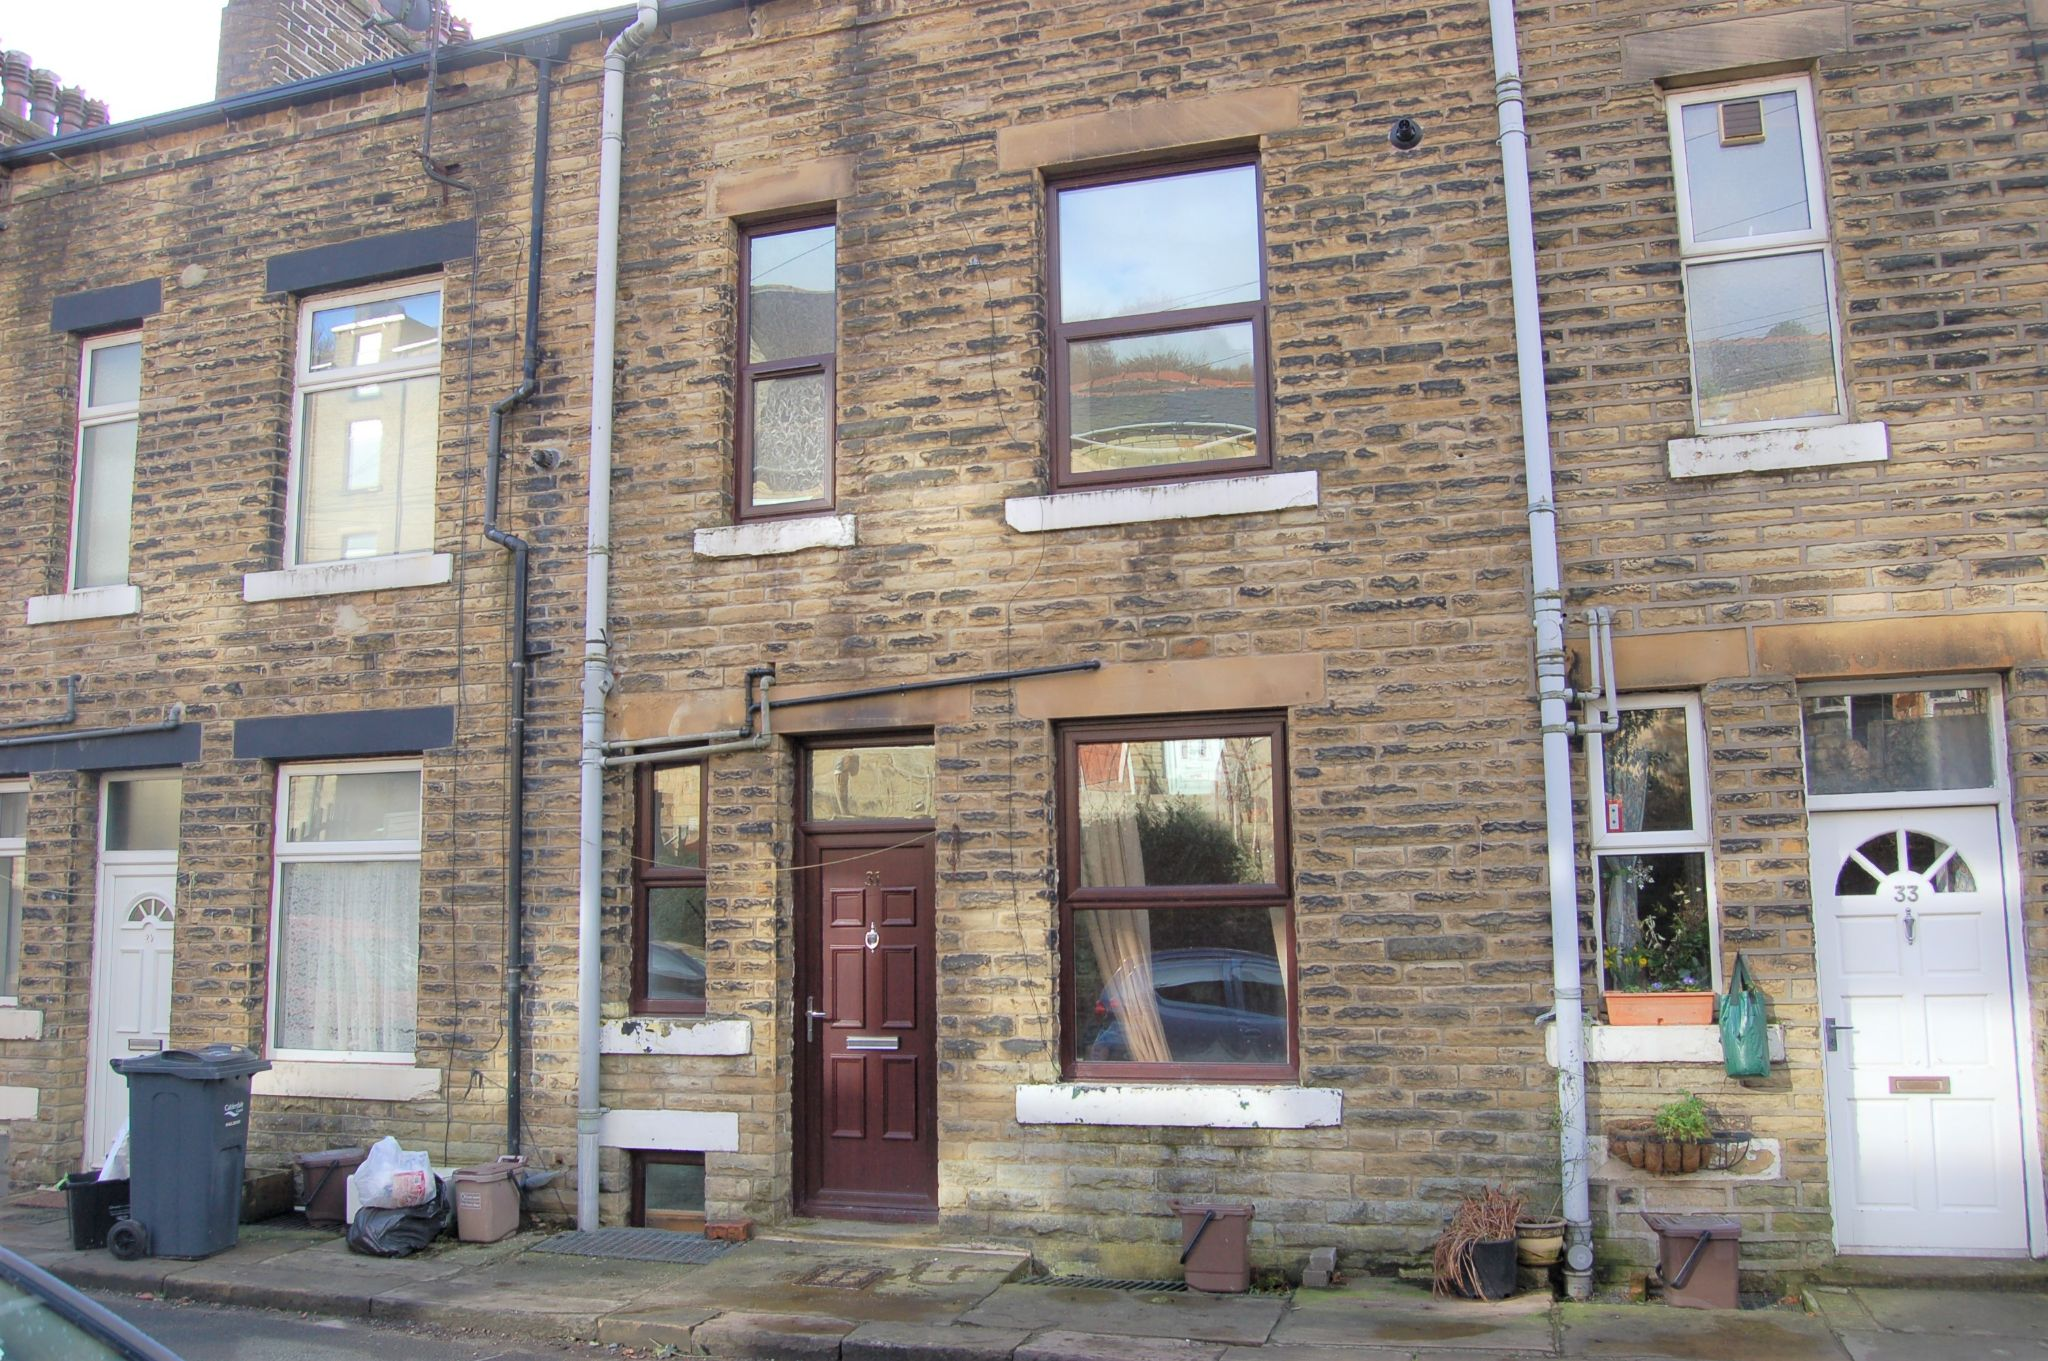 2 bedroom mid terraced house Let Agreed in Hebden Bridge - Property photograph